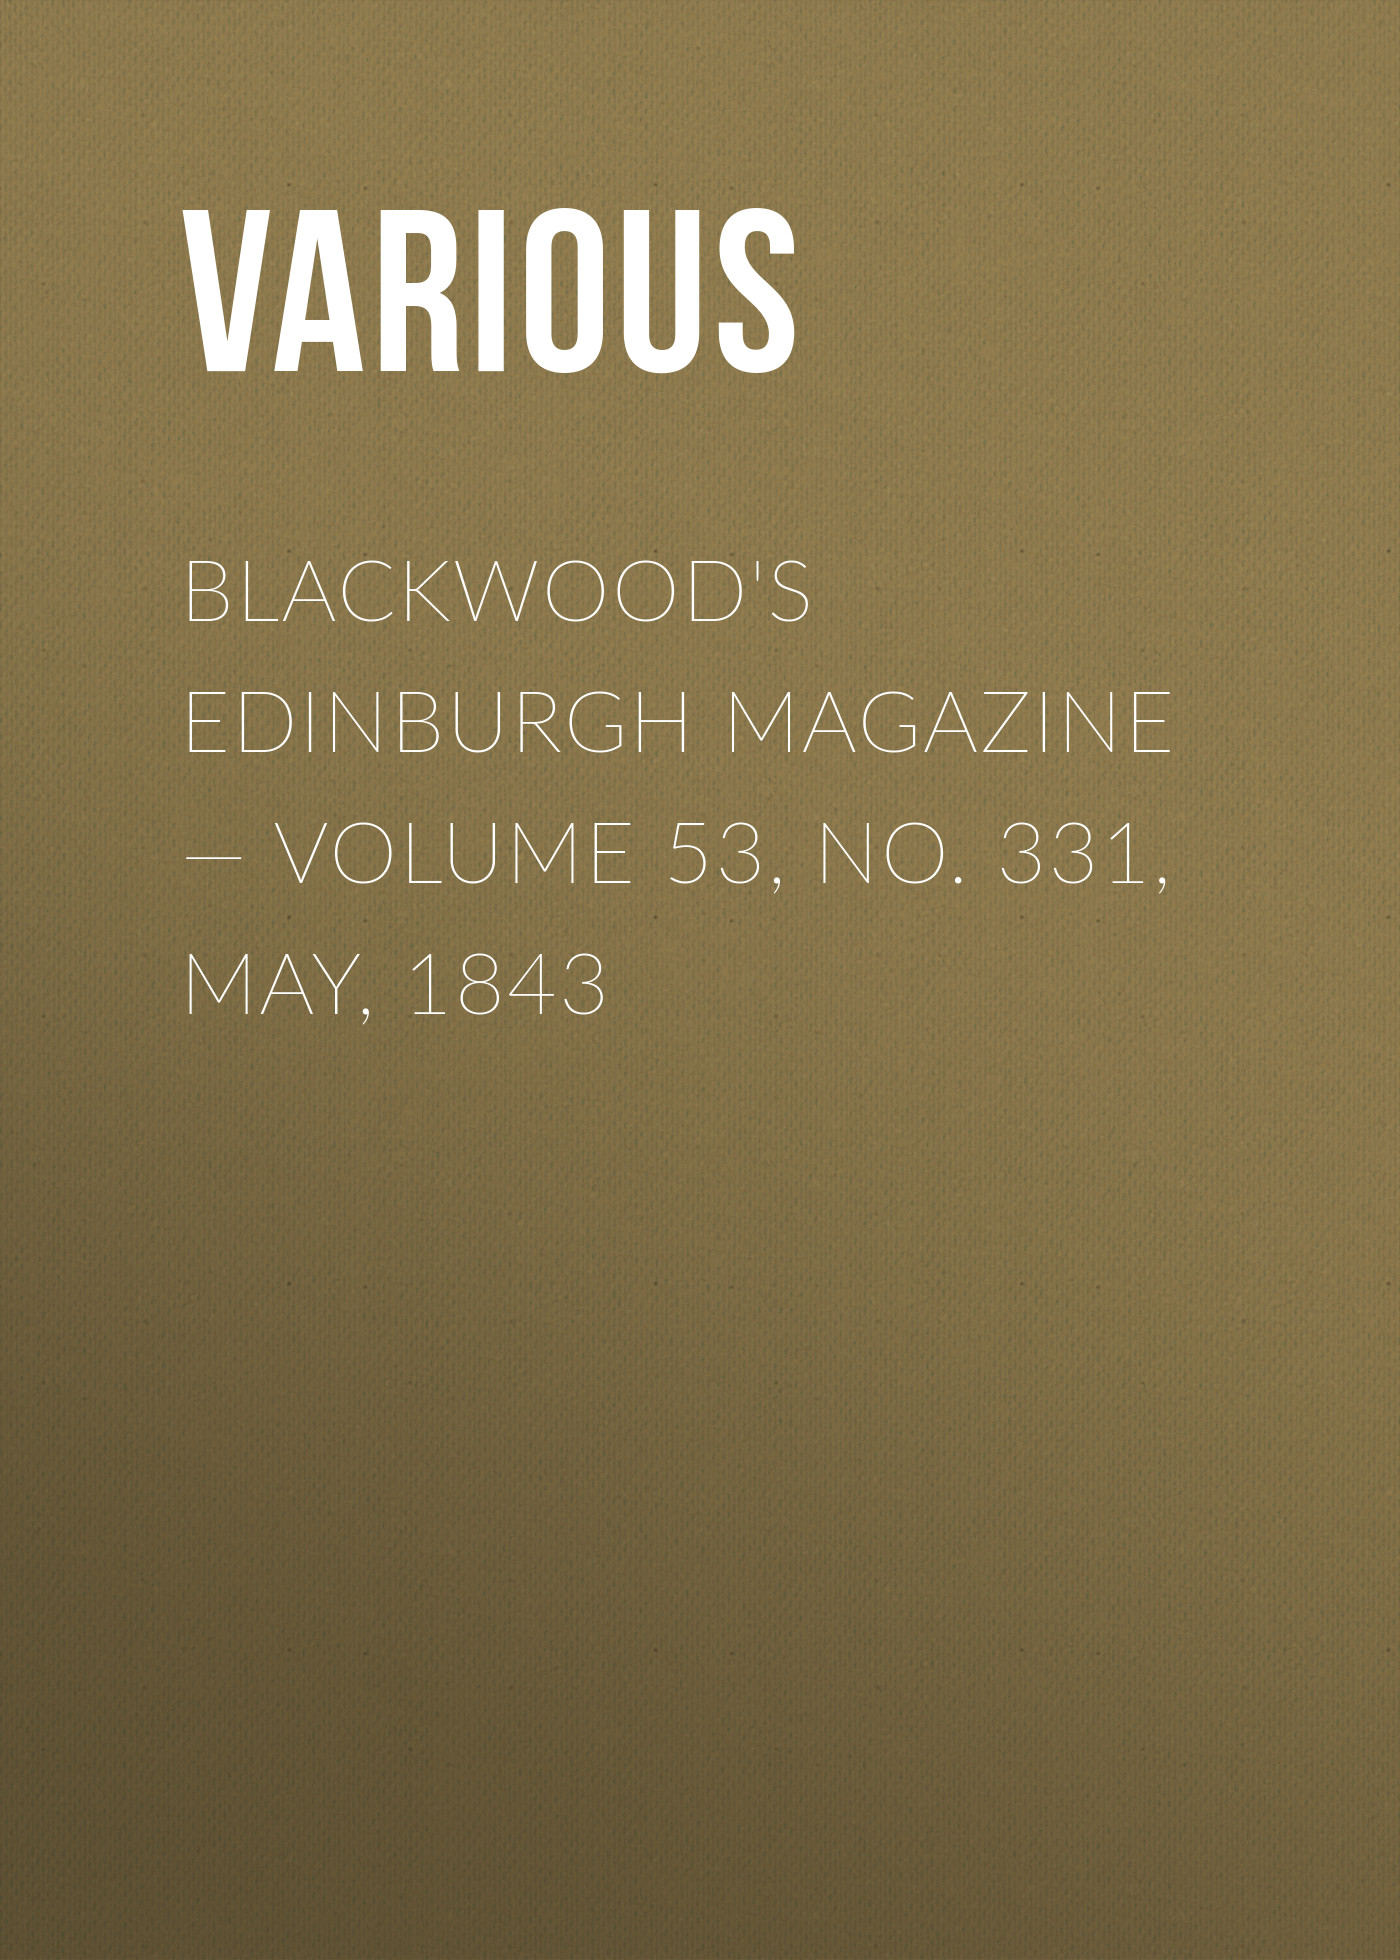 Blackwood's Edinburgh Magazine — Volume 53, No. 331, May, 1843